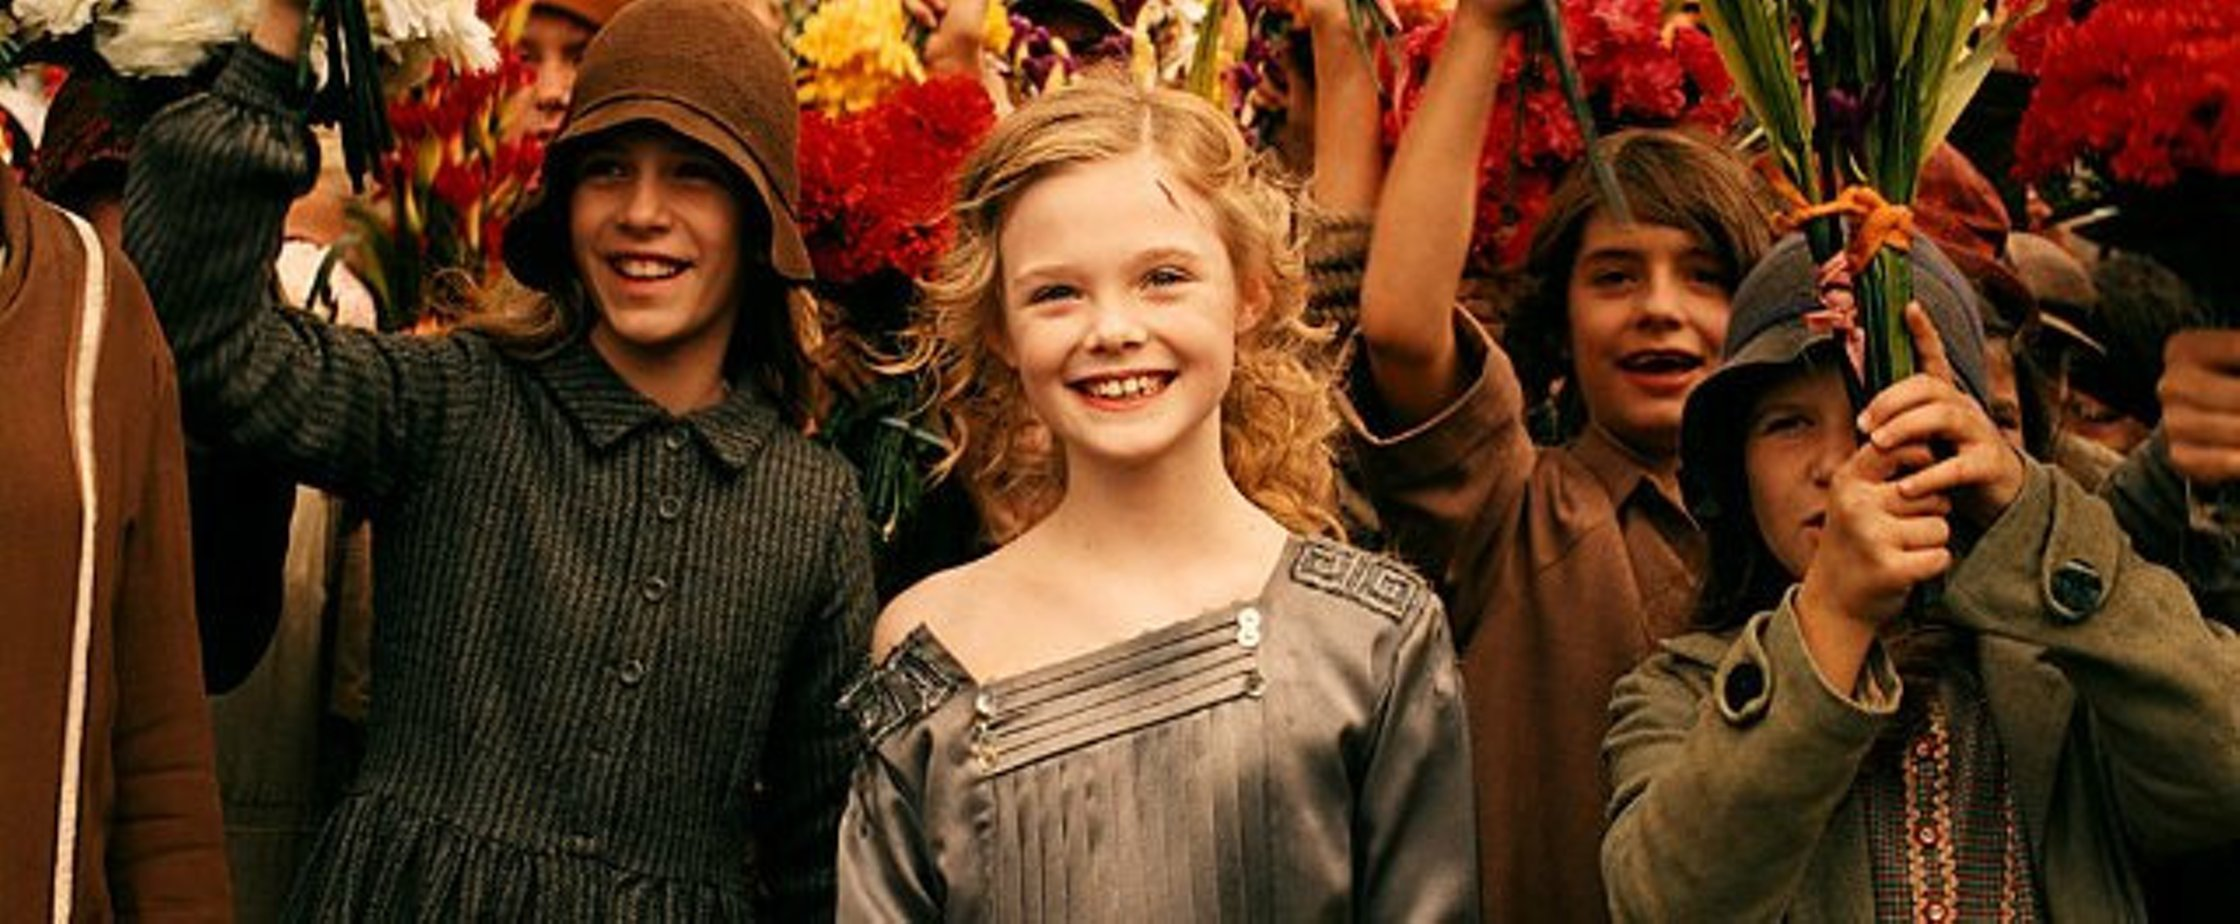 The Nutcracker In 3d (2009) Online Sa Prevodom